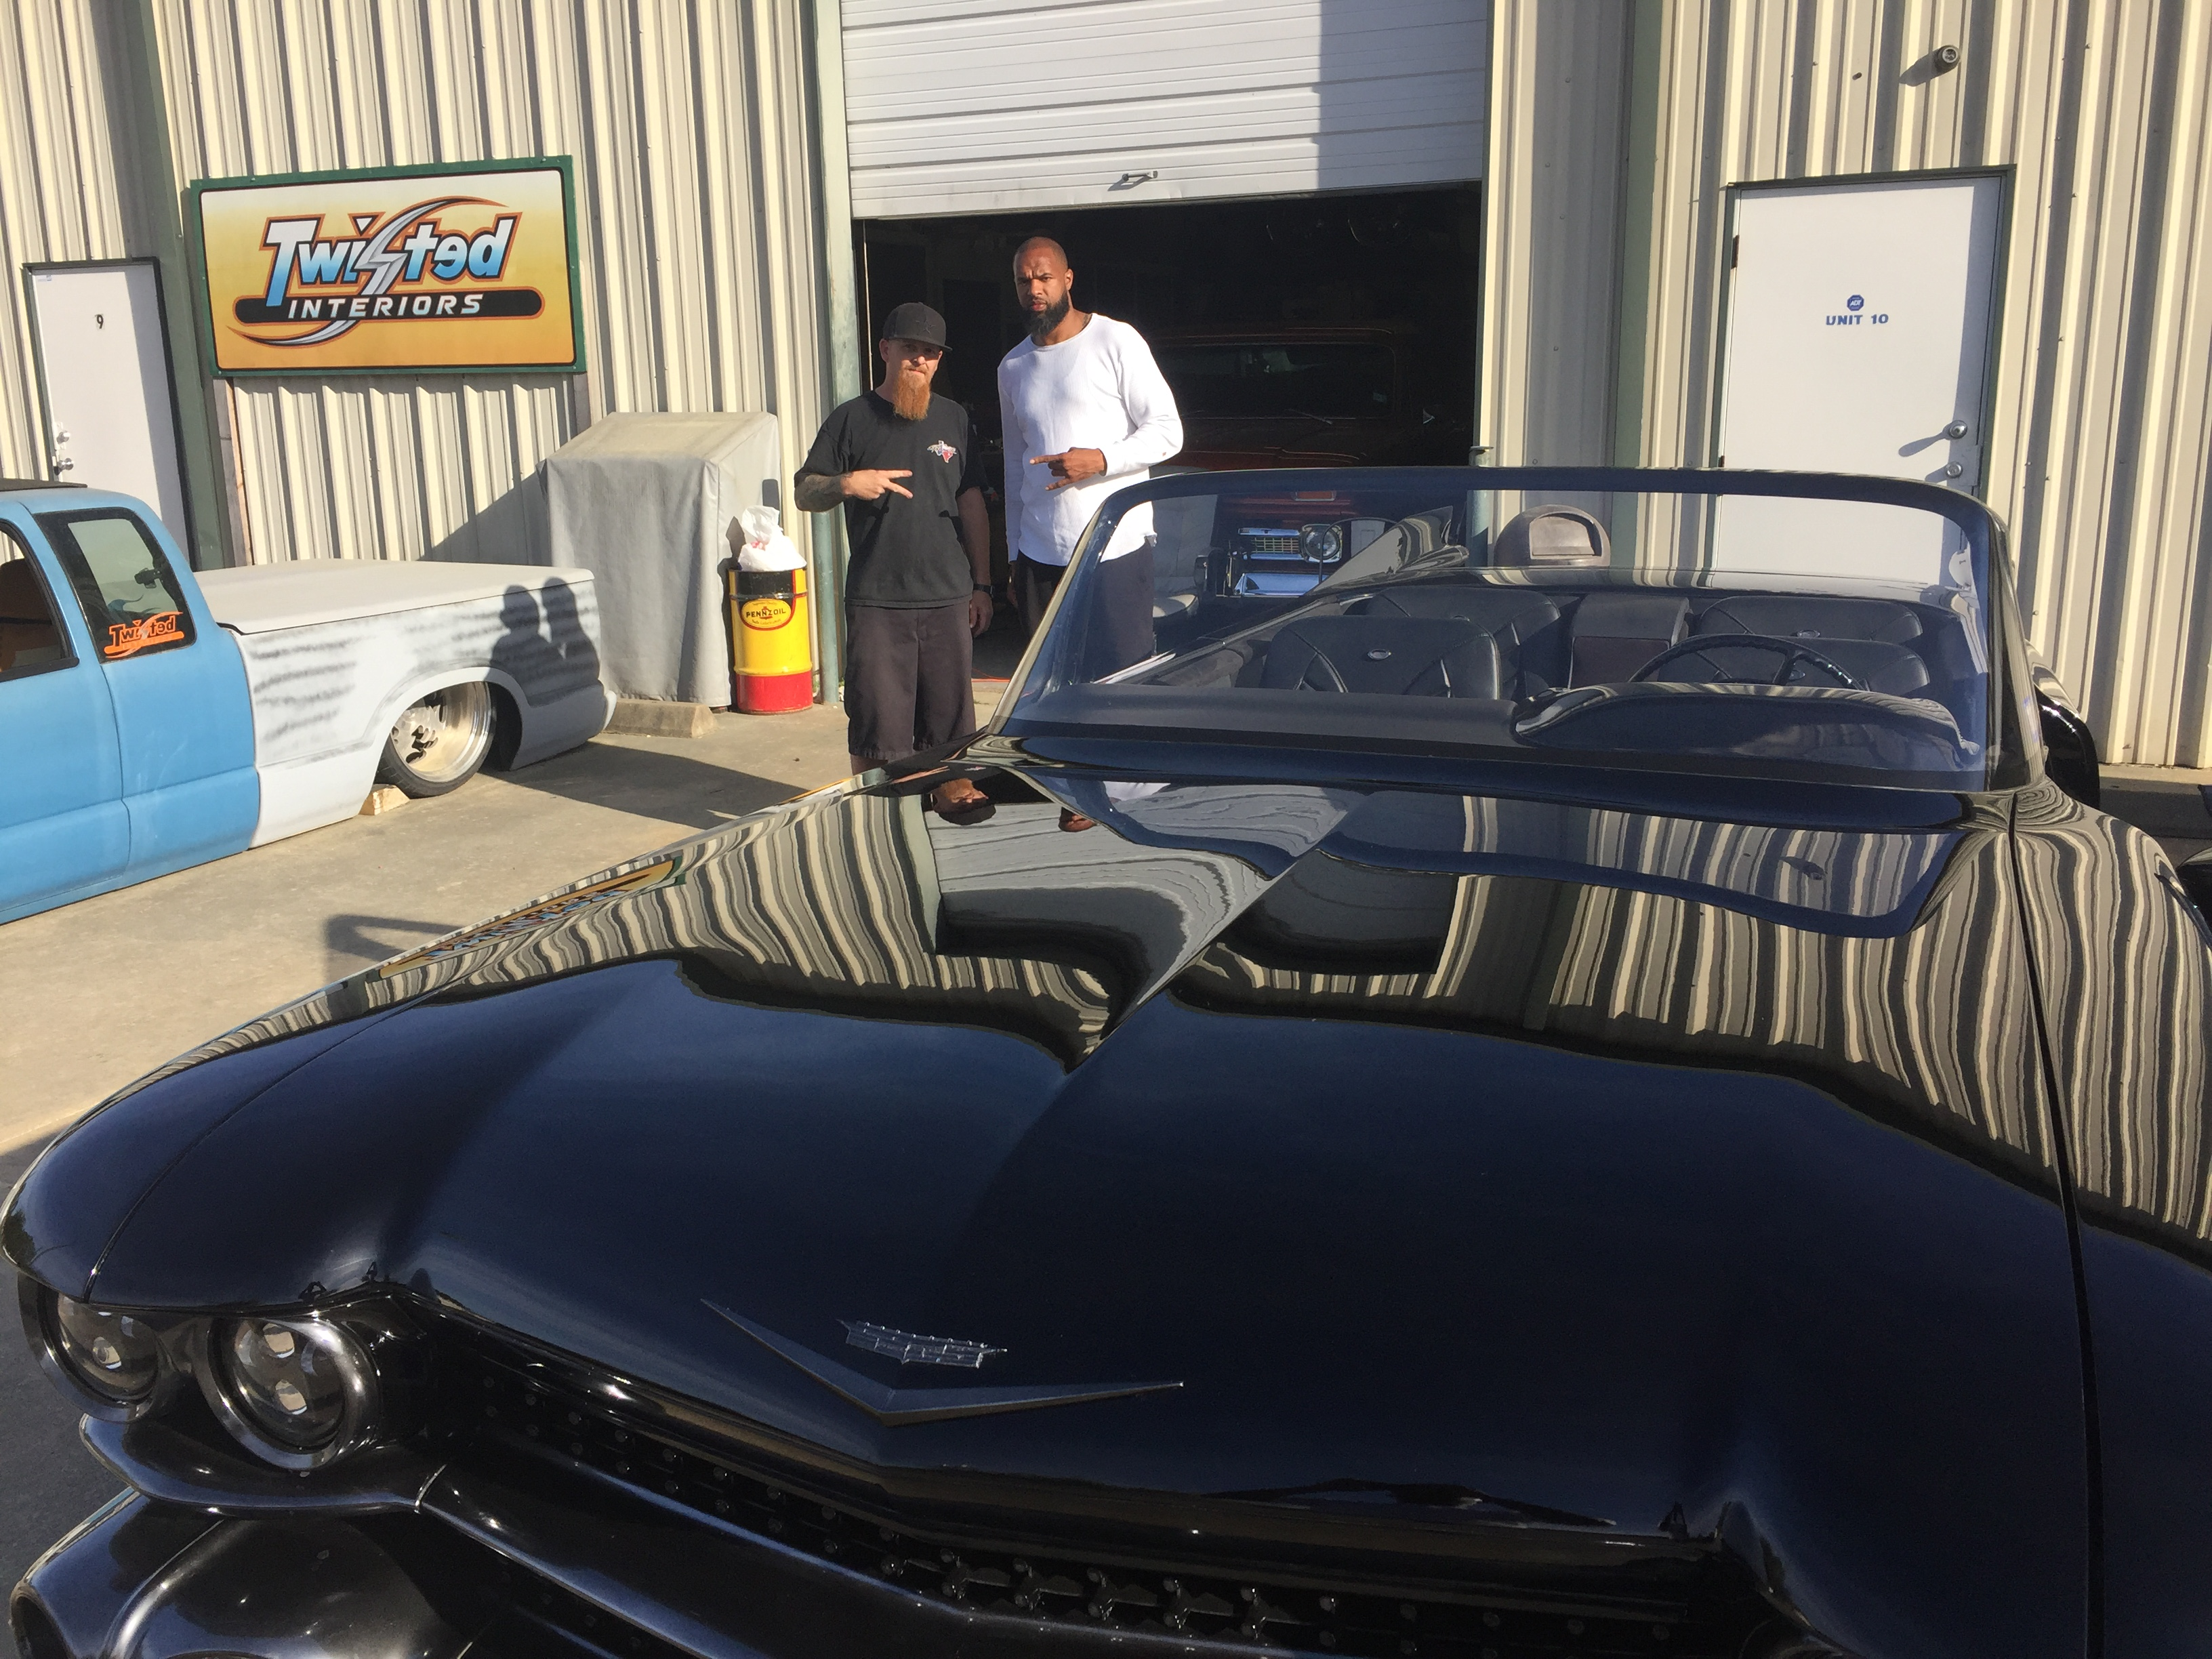 John Burgess and Slim Thug at Twisted Interiors - Slim Thugs 1959 Cadillac - Texas Metal